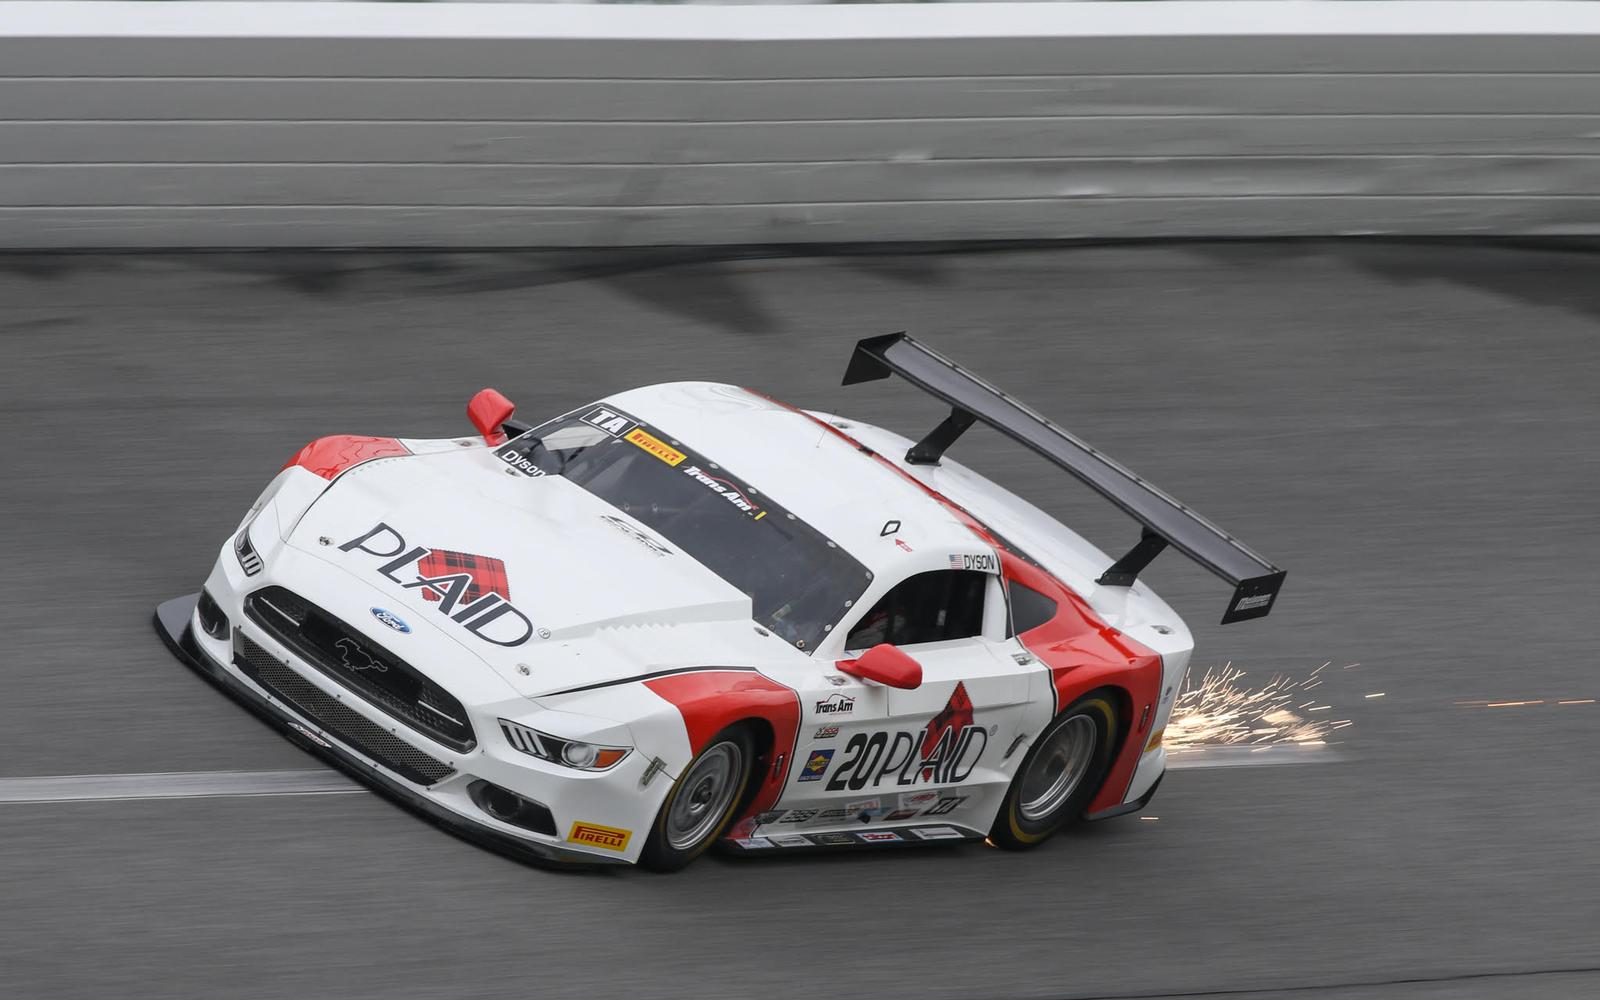 Trans Am Delivers Drama at Daytona in Qualifying